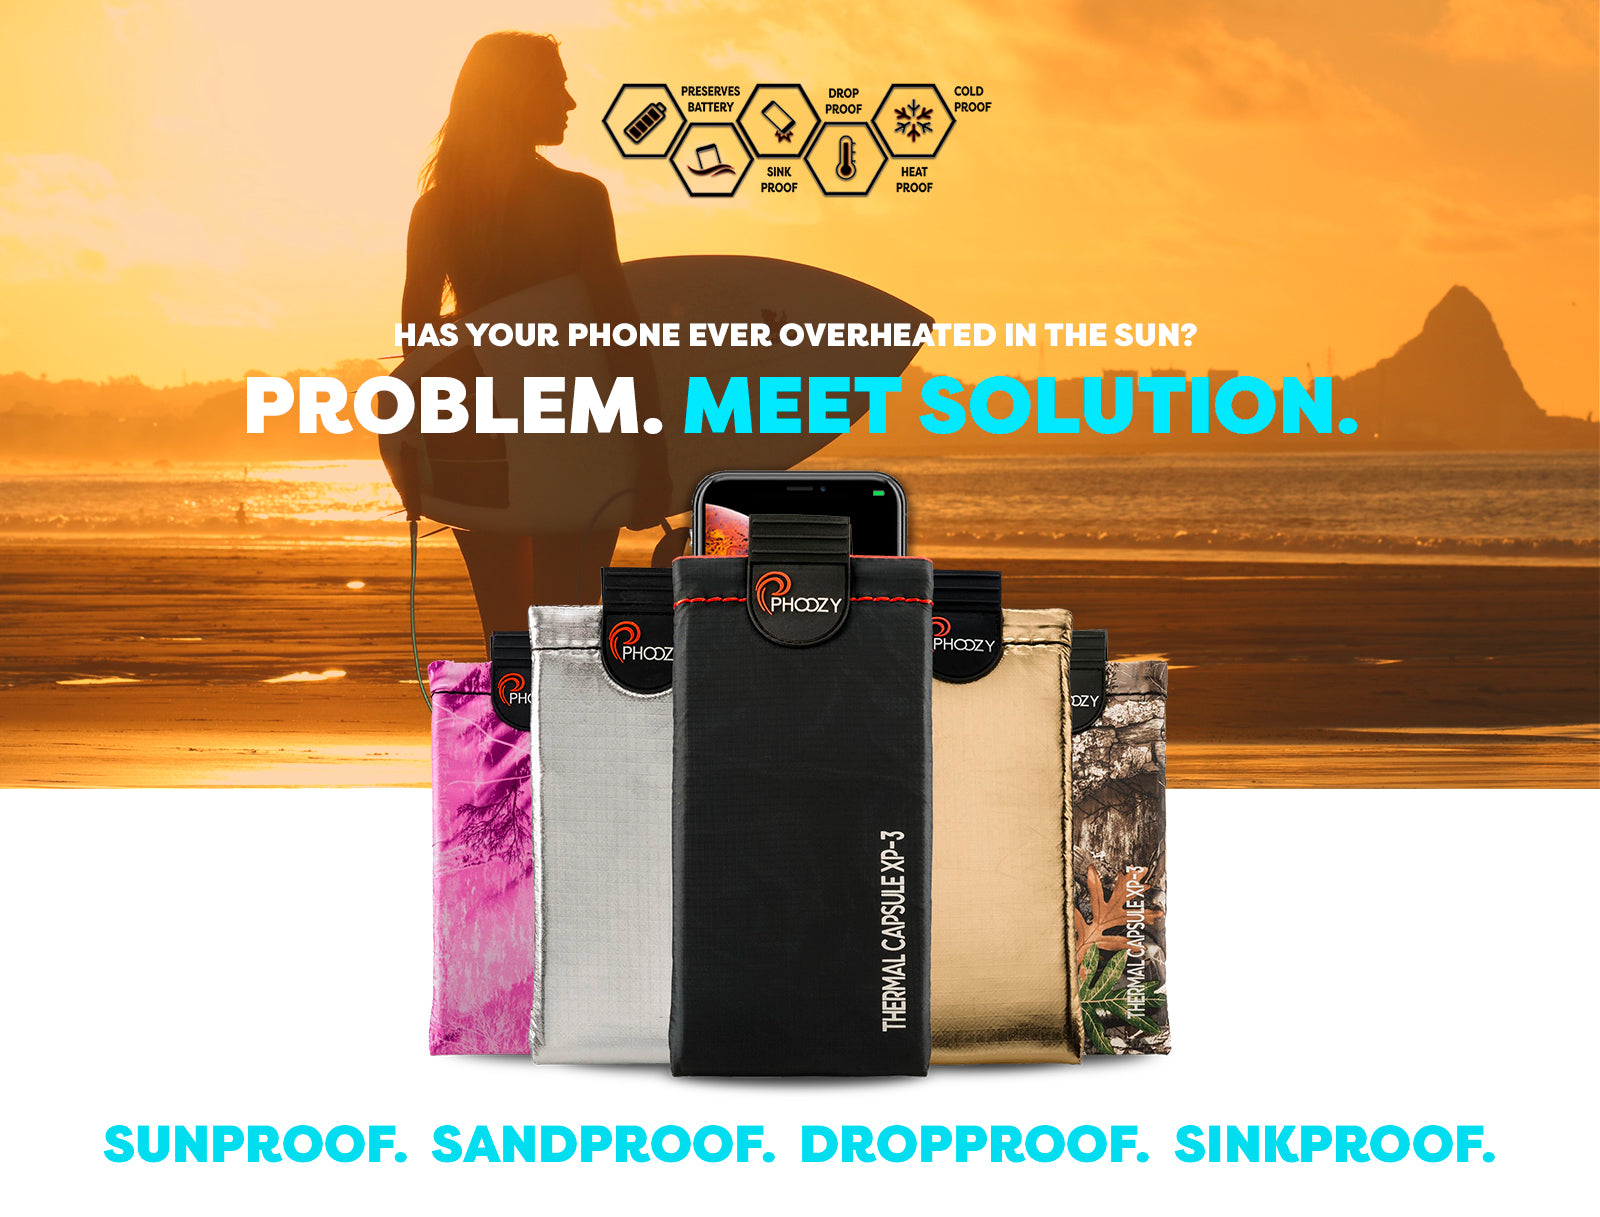 has your phone ever overheated in the sun? problem, meet solution.  PHOOZY.  sunproof. sandproof. dropproof. sinkproof.